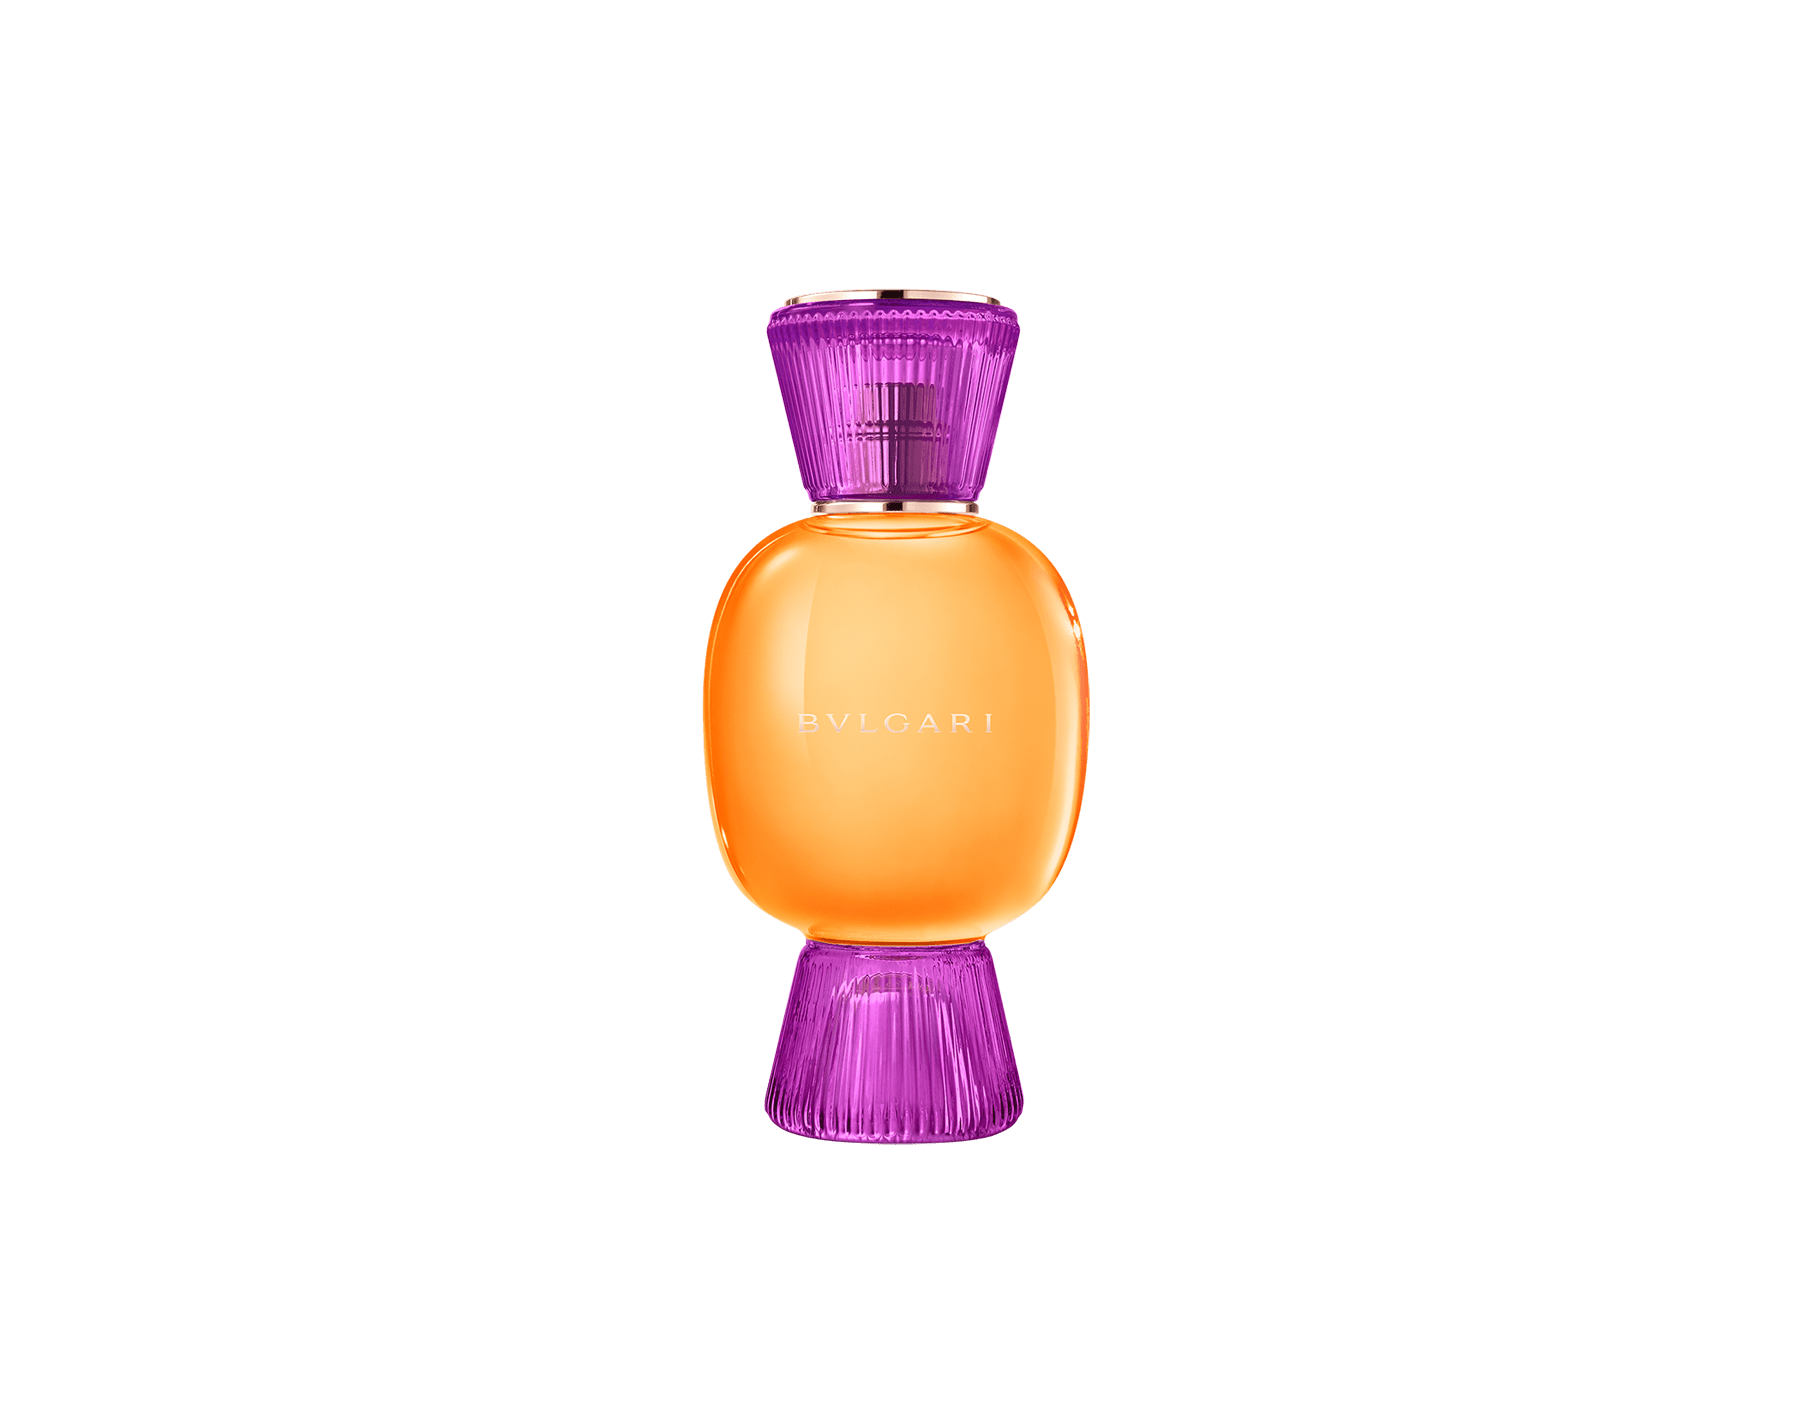 An exclusive perfume set, as bold and unique as you. The liquorous floriental Rock'n'Rome Allegra Eau de Parfum blends with the velvety, voluptuous intensity of the Magnifying Rose Essence, creating an irresistible personalised women's perfume. Perfume-Set-Rock-n-Rome-Eau-de-Parfum-and-Rose-Magnifying image 2